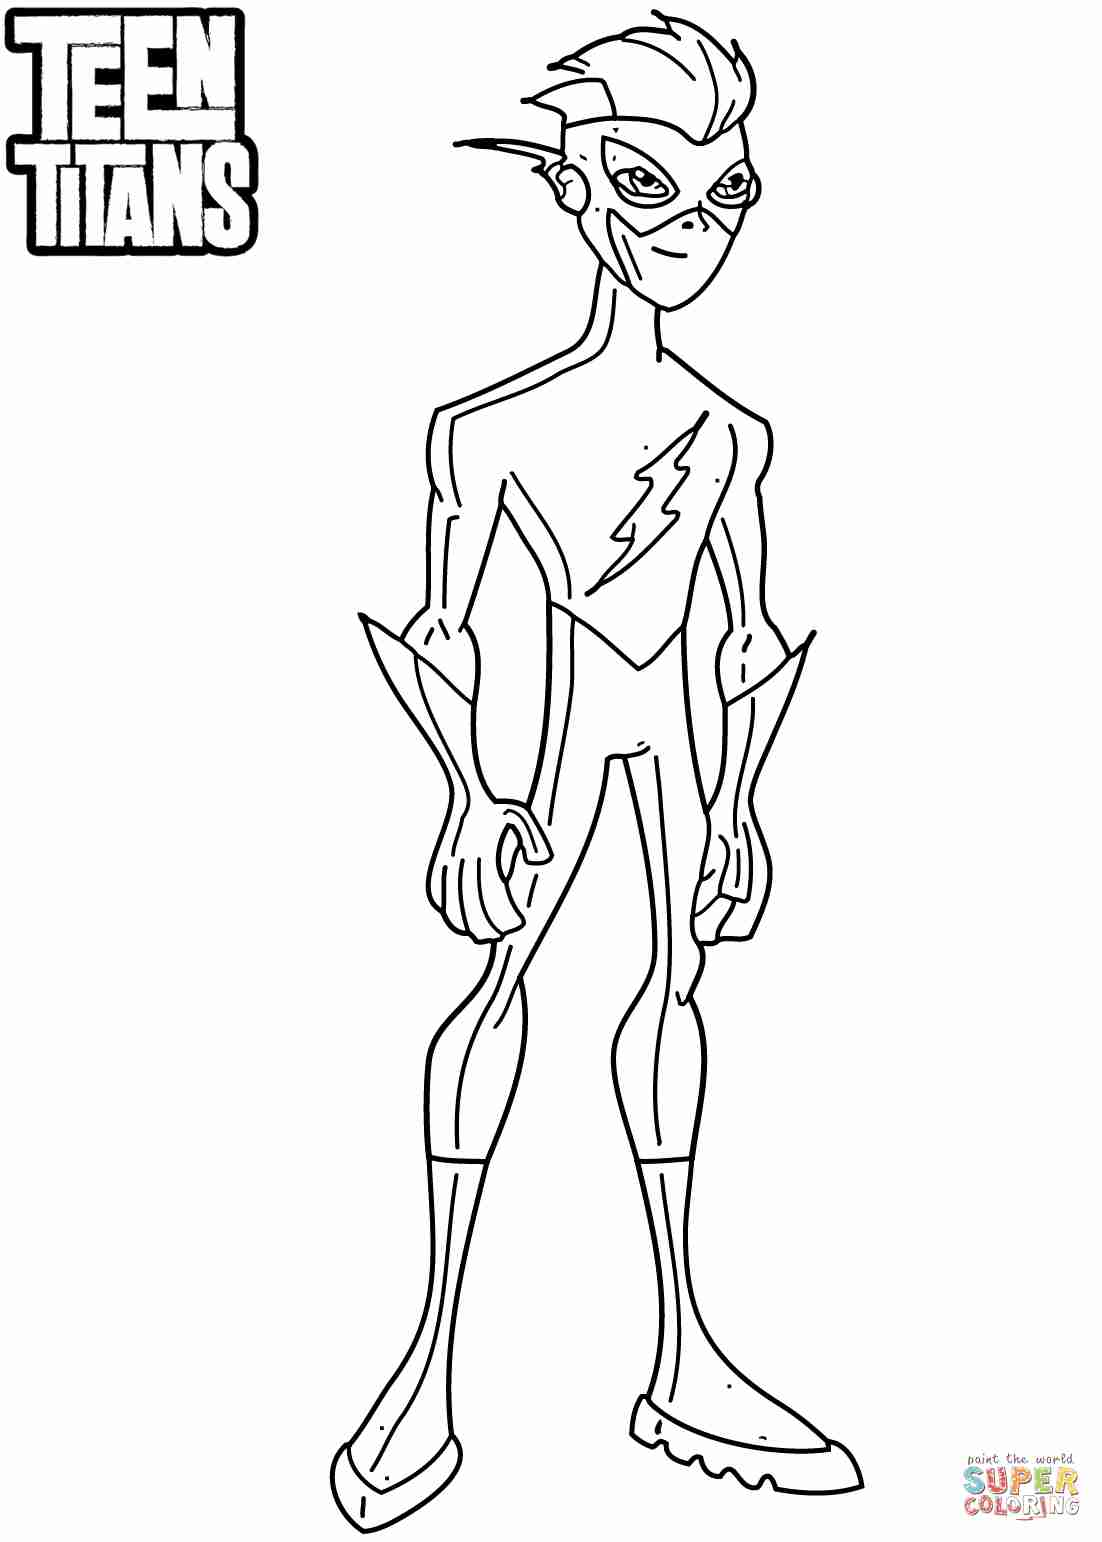 1102x1542 Teen Titans Kid Flash Coloring Page Free Printable Pages Simple